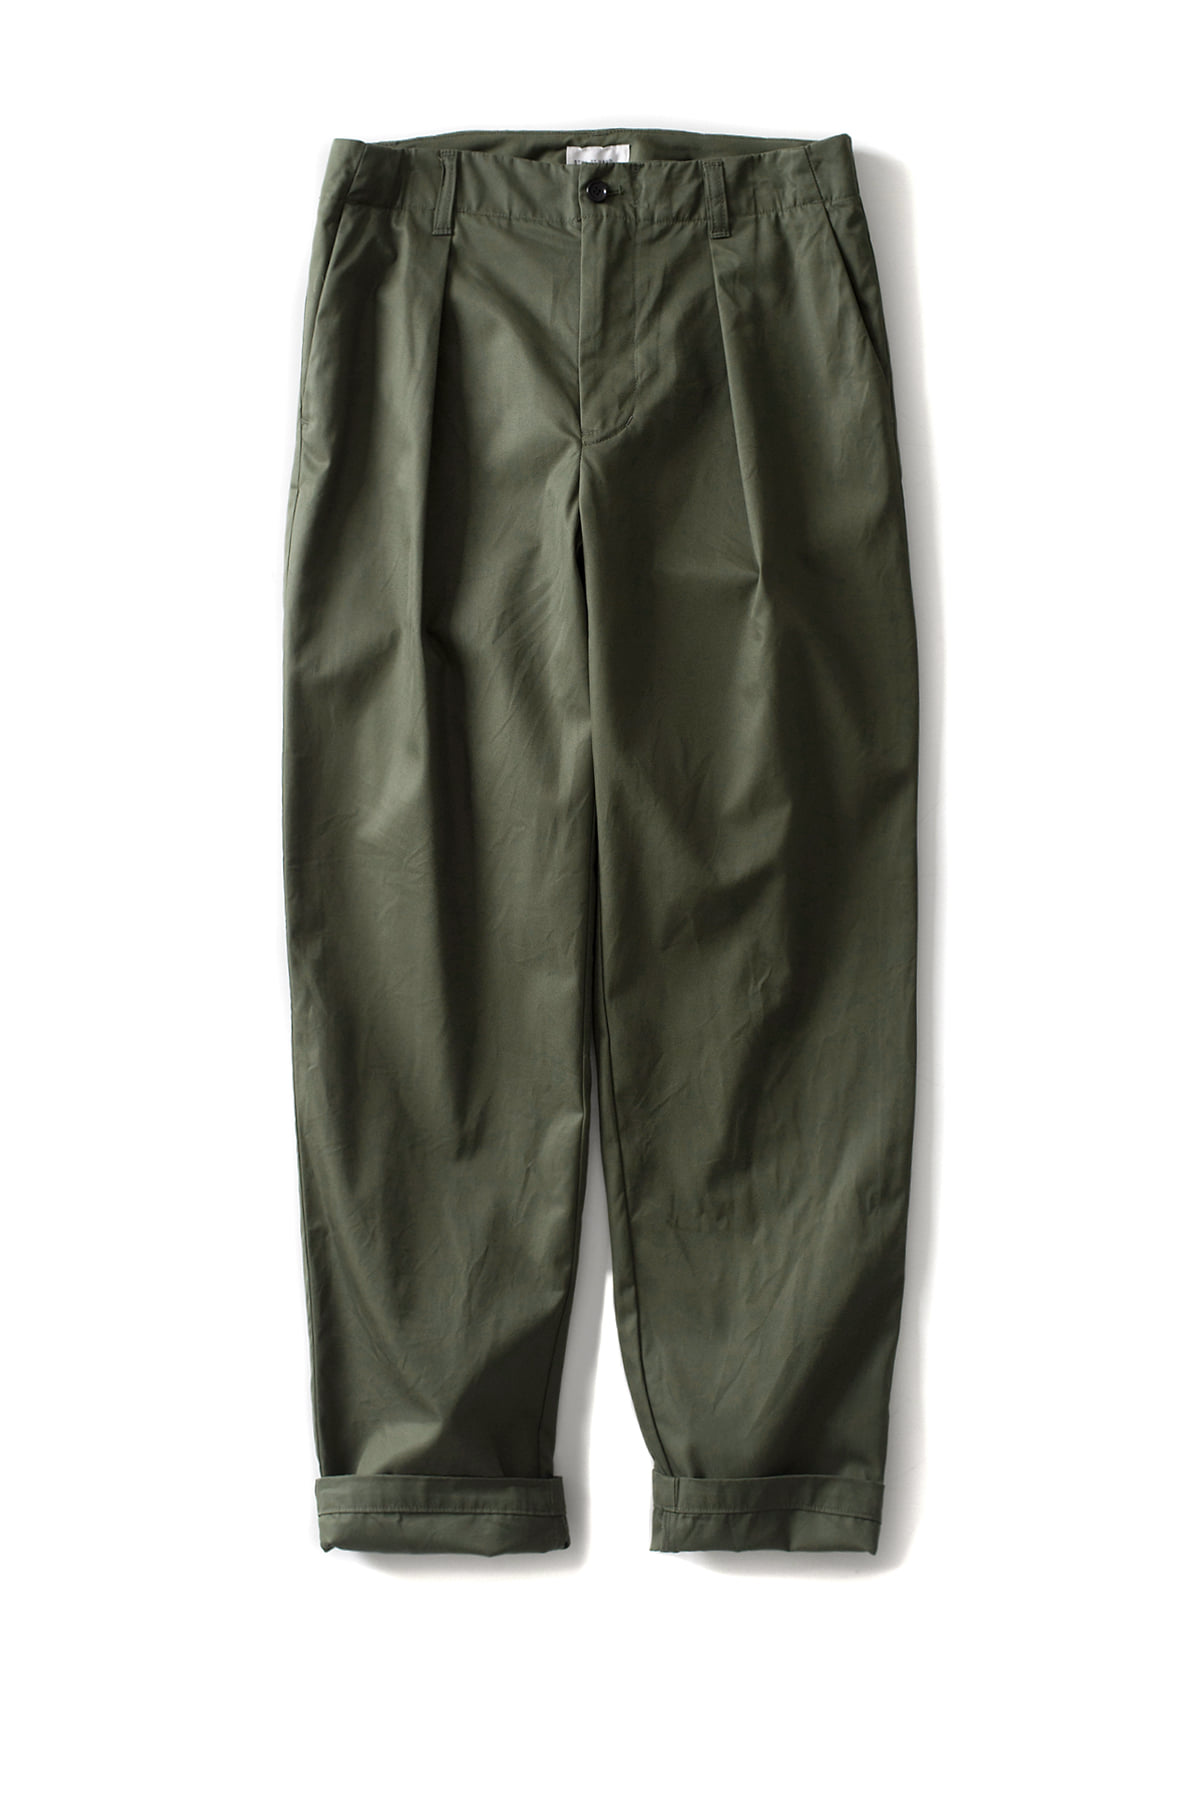 Still by Hand : Deep Tuck Twill Slacks (Olive)